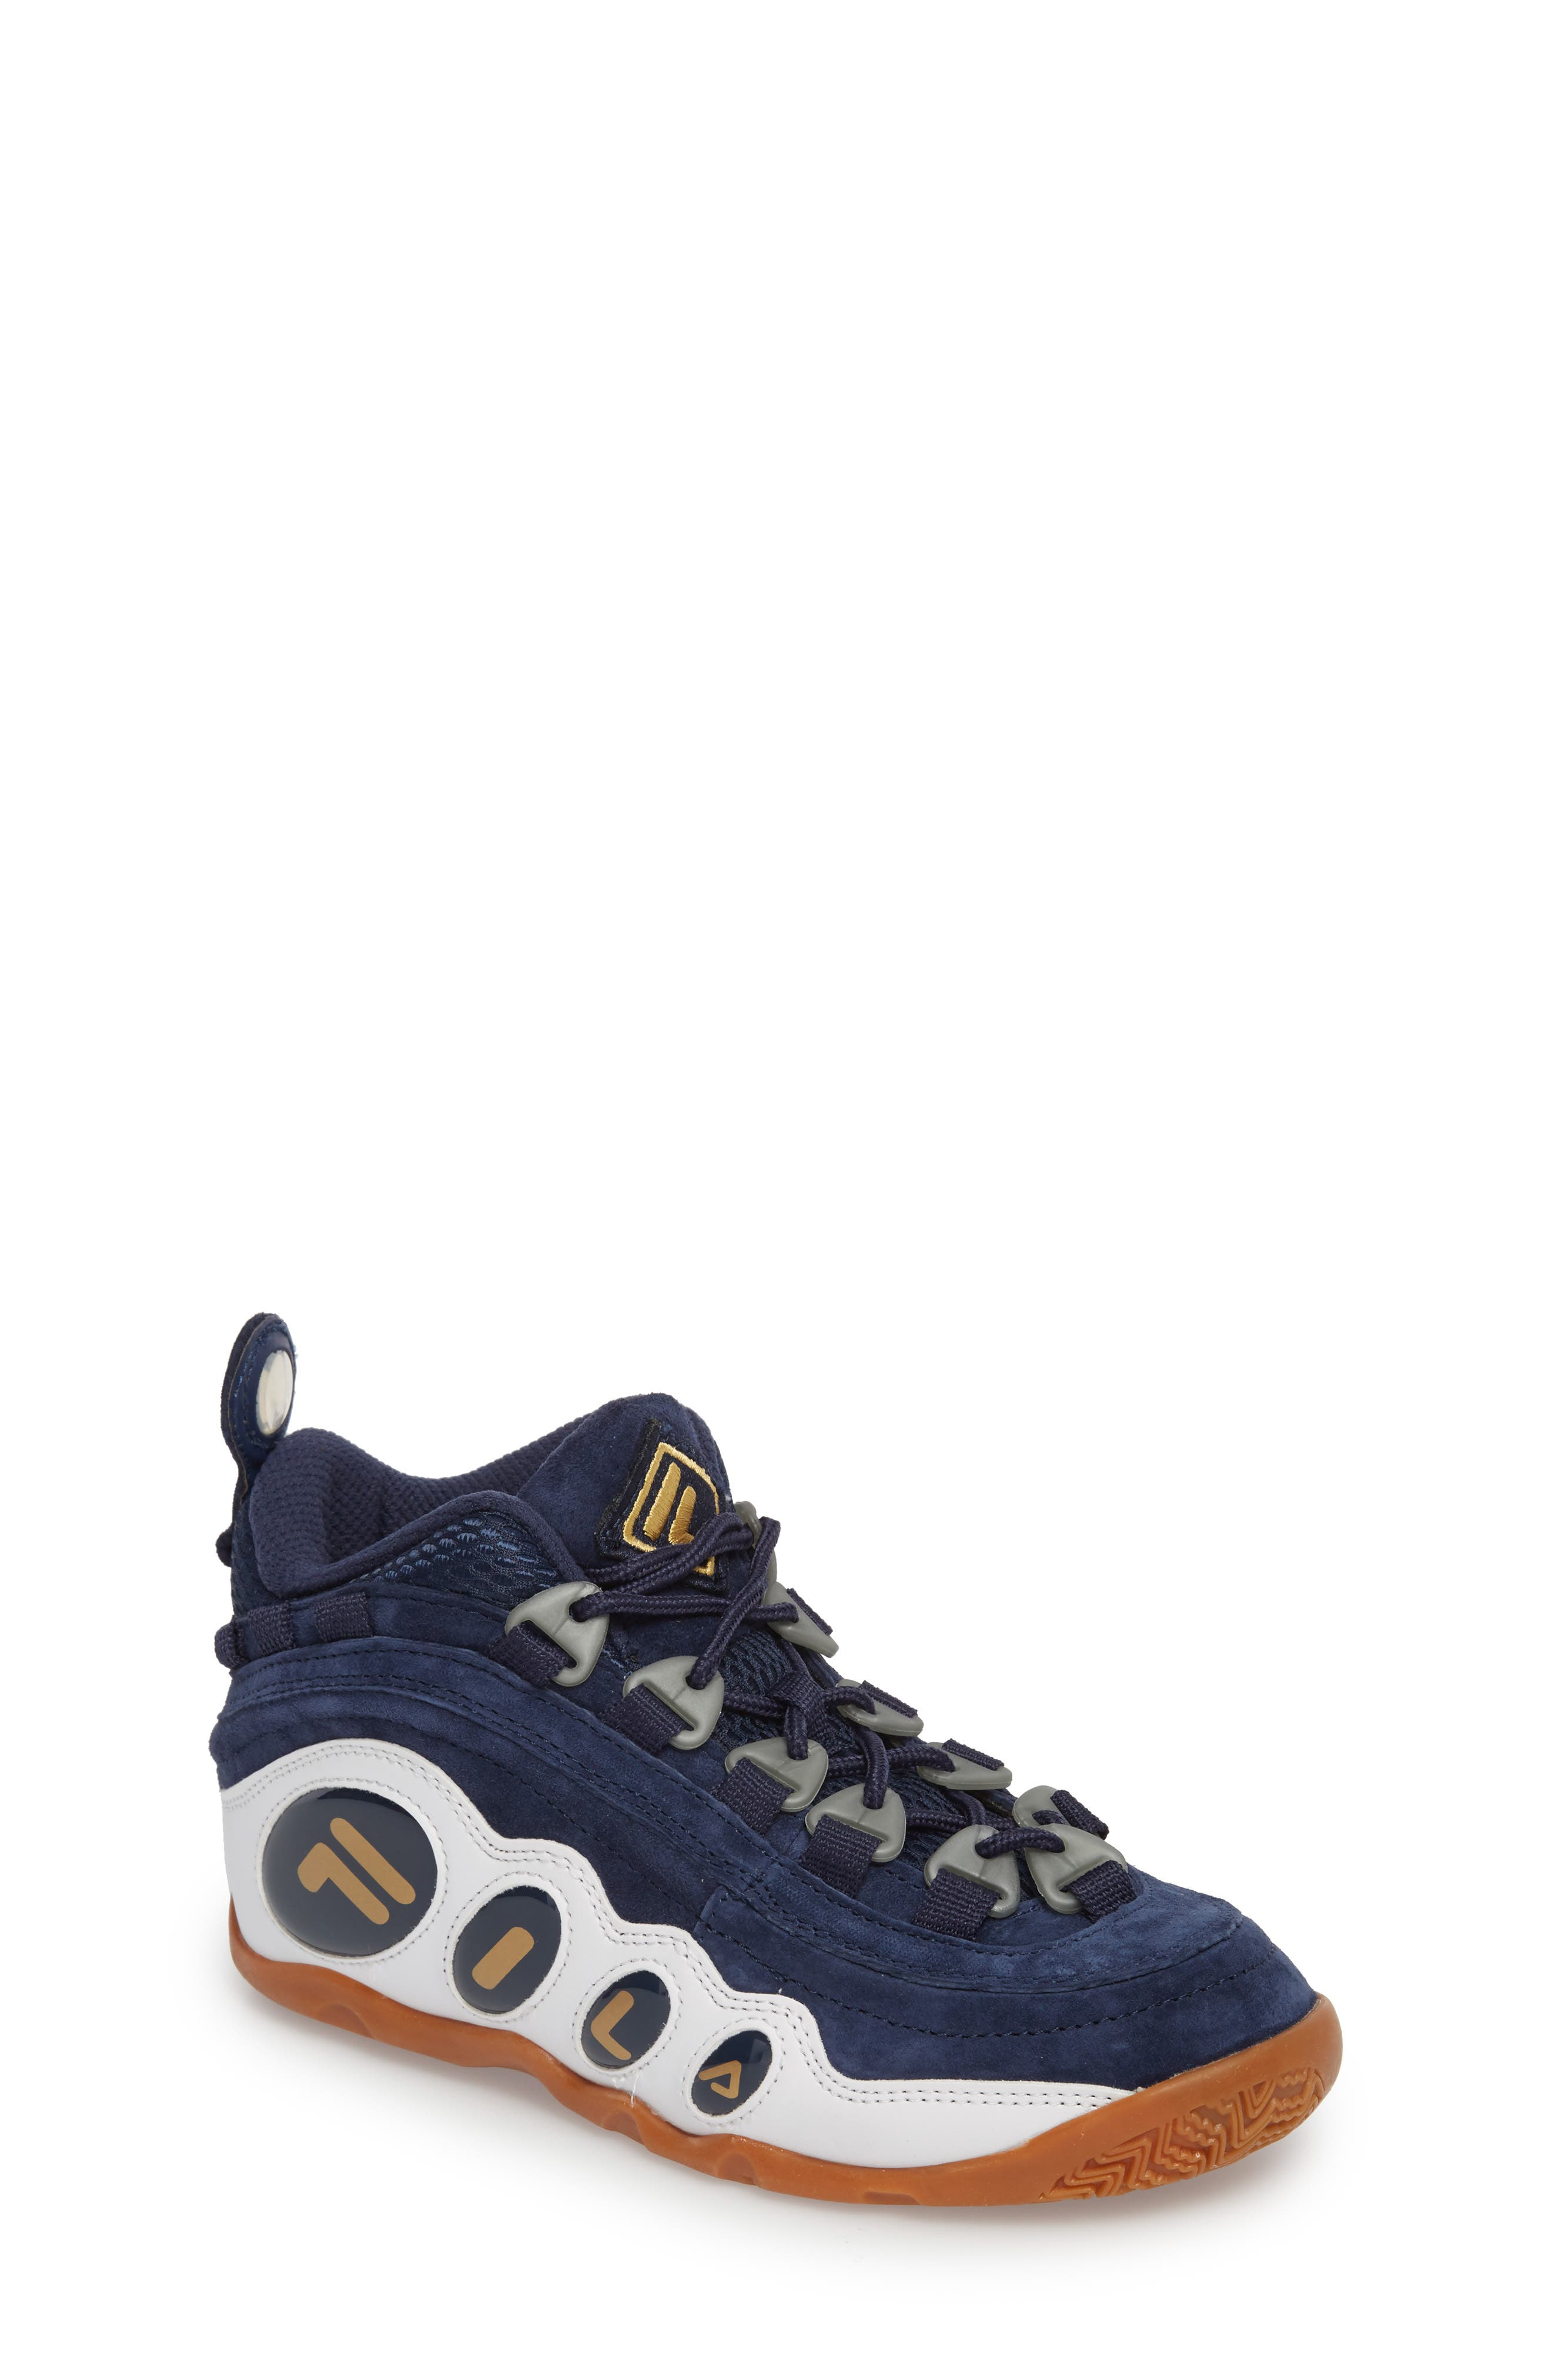 FILA Bubbles Mid Top Sneaker Boot, Main, color, NAVY/ GOLD/ WHITE